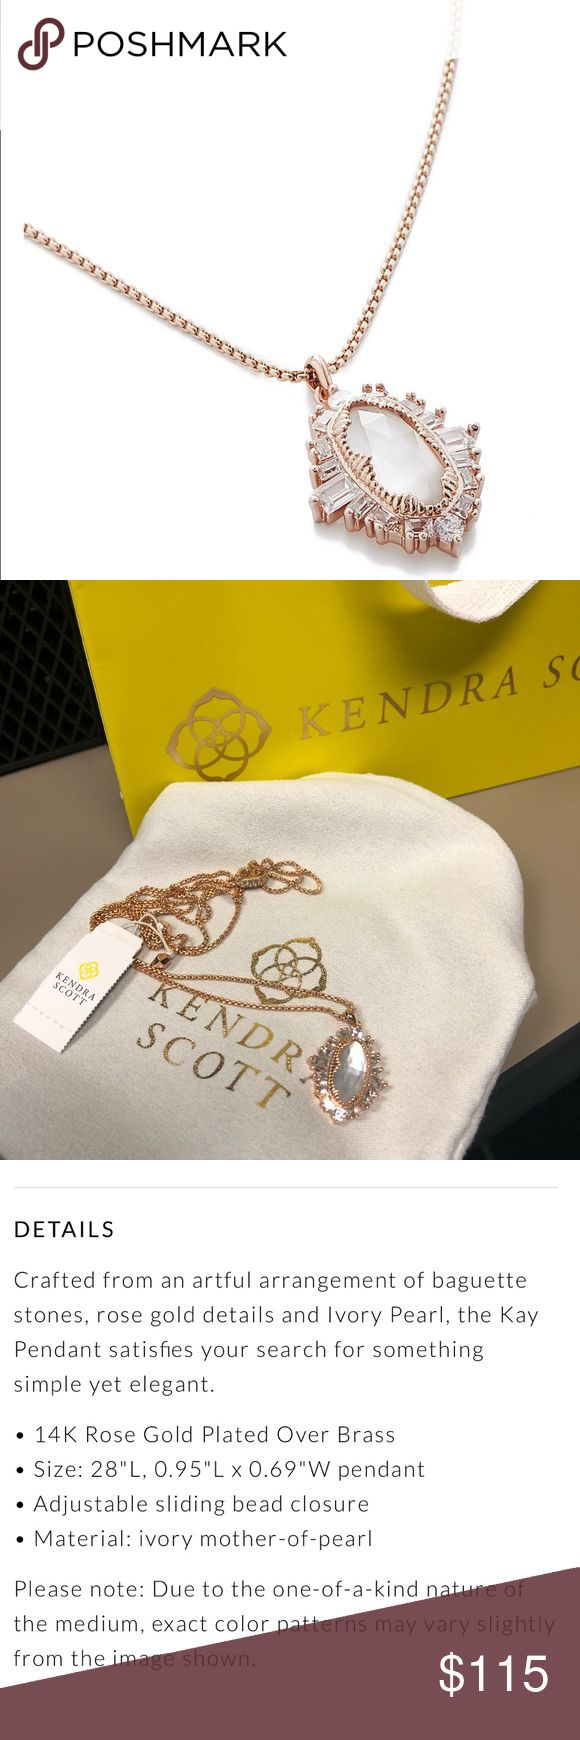 🆕 Kendra Scott Rose Gold Kay Pendant Necklace Beautiful Kendra Scott Kay pendant necklace in rose gold. Please see product details above. It is brand new with the tags and cones in its original dust bag and with the shopping bag. Please ask questions! Kendra Scott Jewelry Necklaces